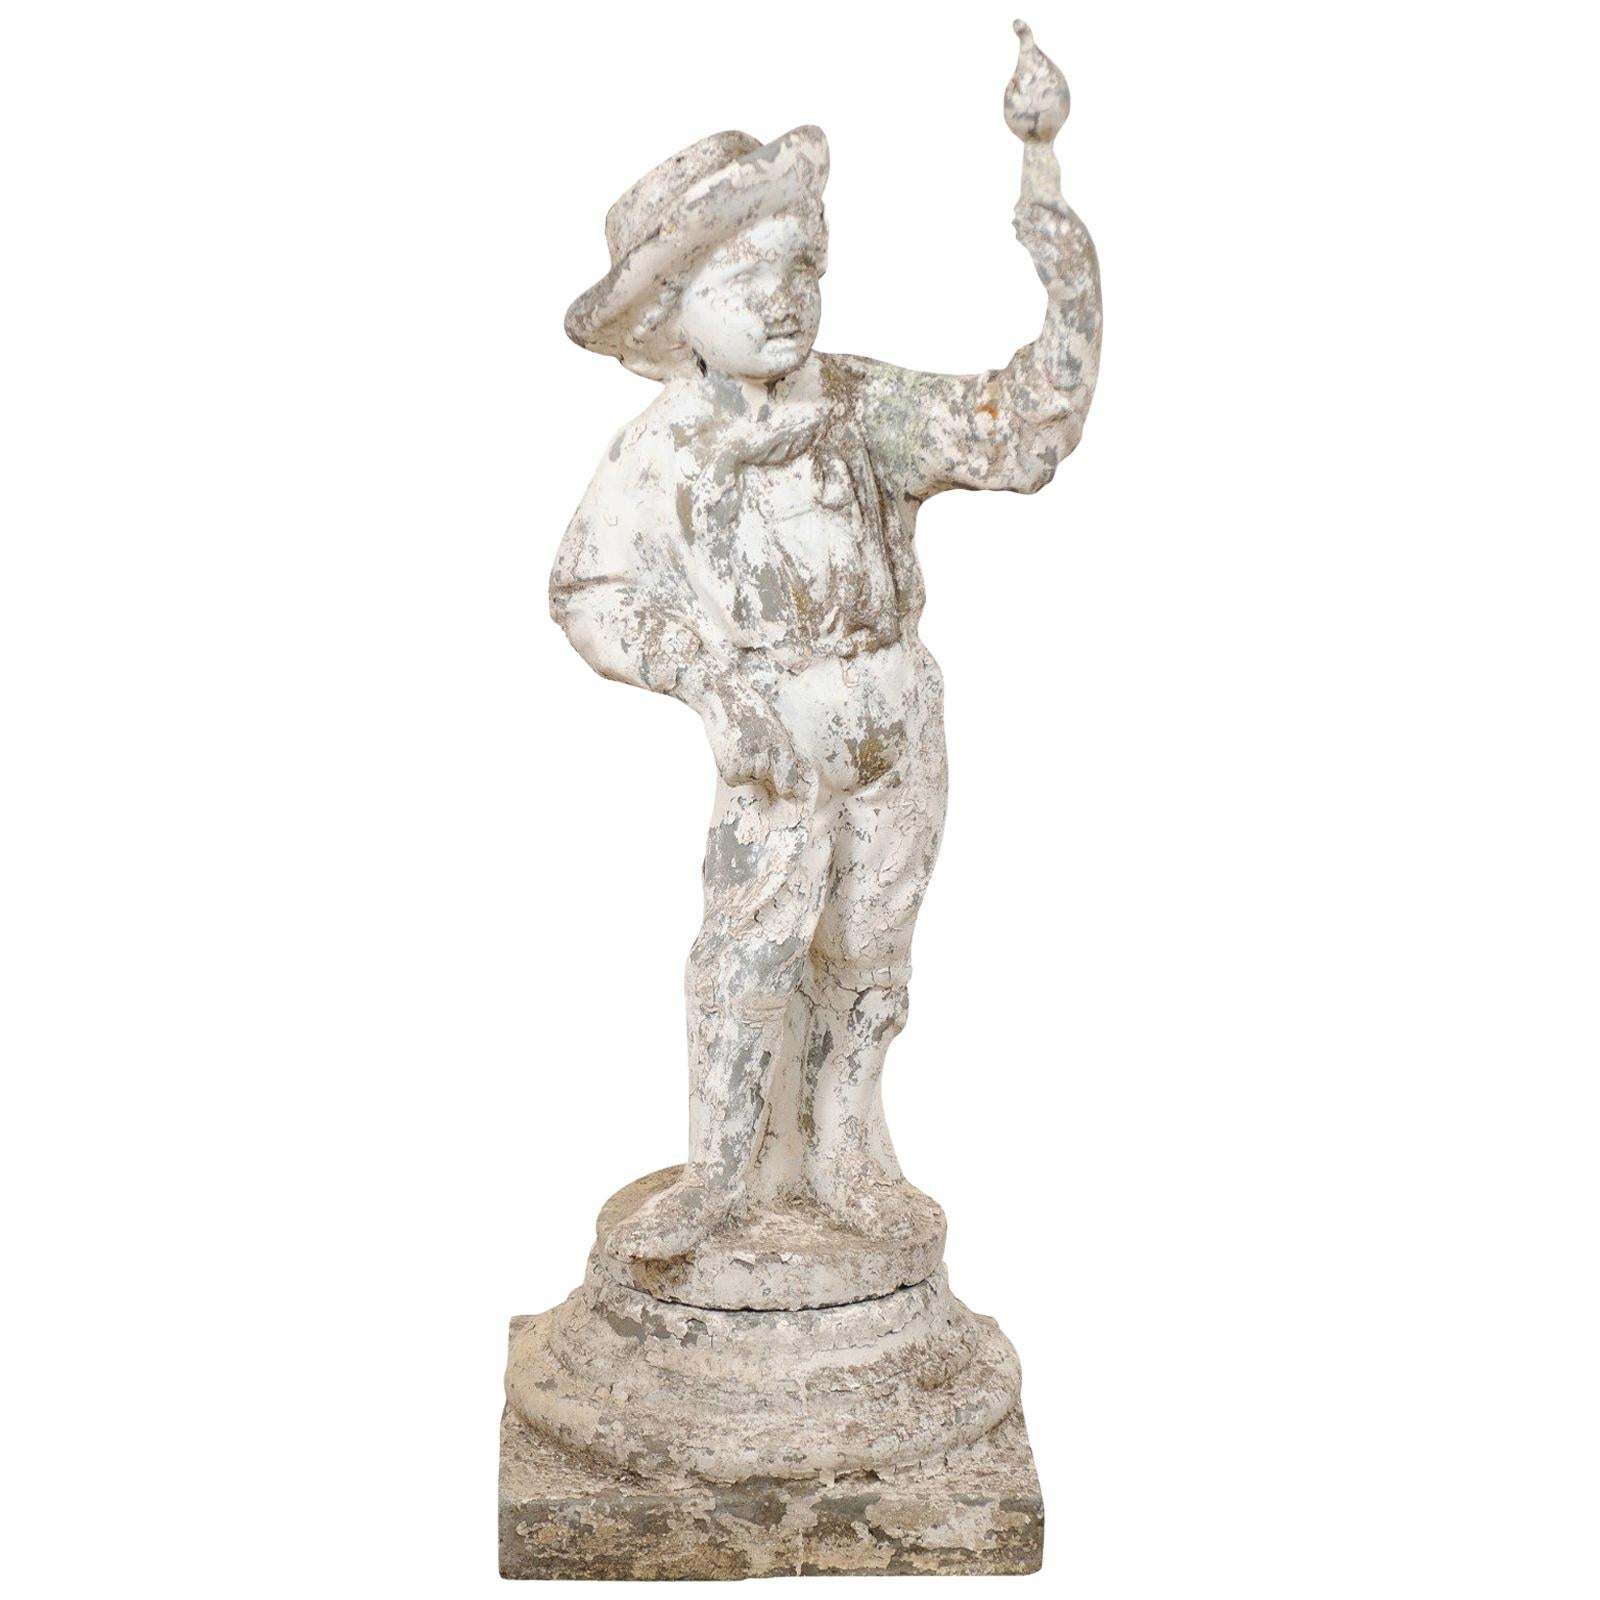 French Antique Cast-Stone Garden Sculpture of Boy with Bird, 4+ Ft in Height